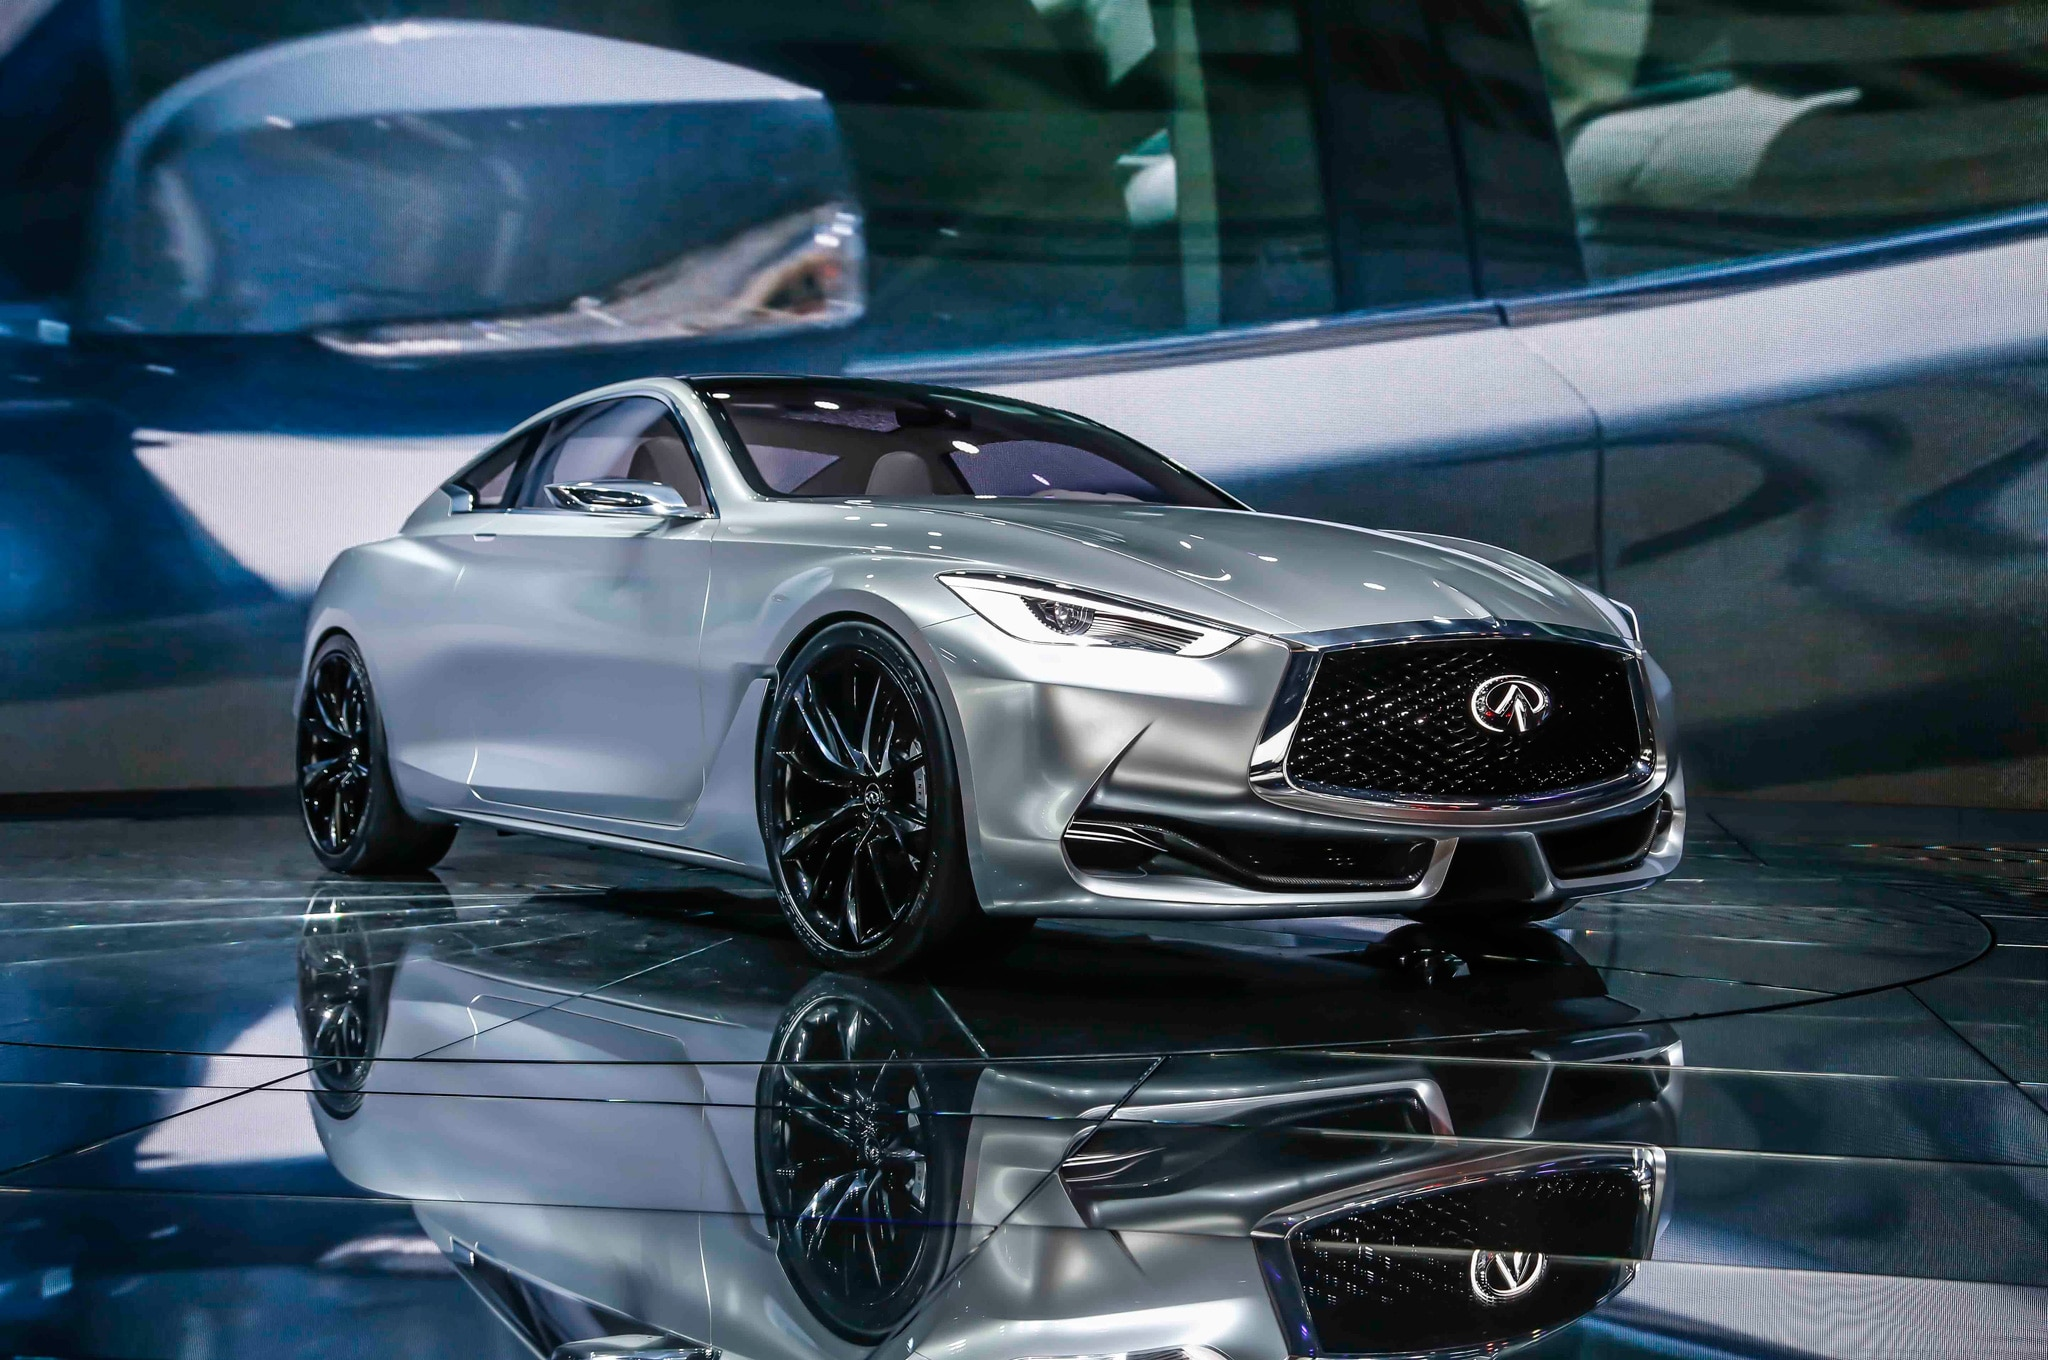 2015 Infiniti Q60 Convertible >> Infiniti Q60 Coupe to Debut at 2016 Detroit Auto Show